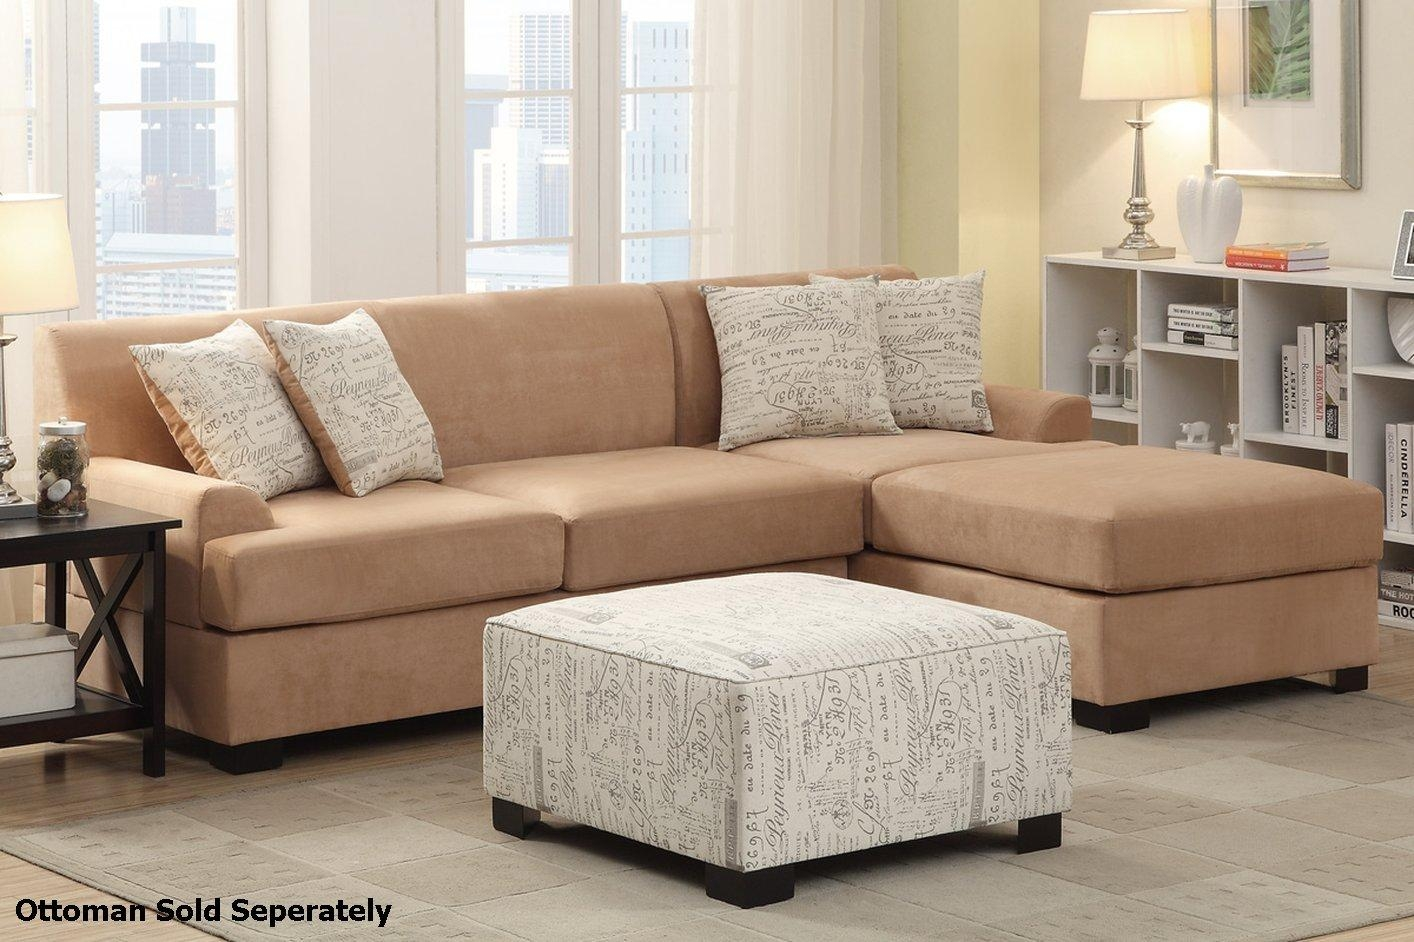 Sofas Center : Phenomenal Seat Sectional Sofa Image Ideas For Inside 2 Seat Sectional Sofas (View 14 of 15)